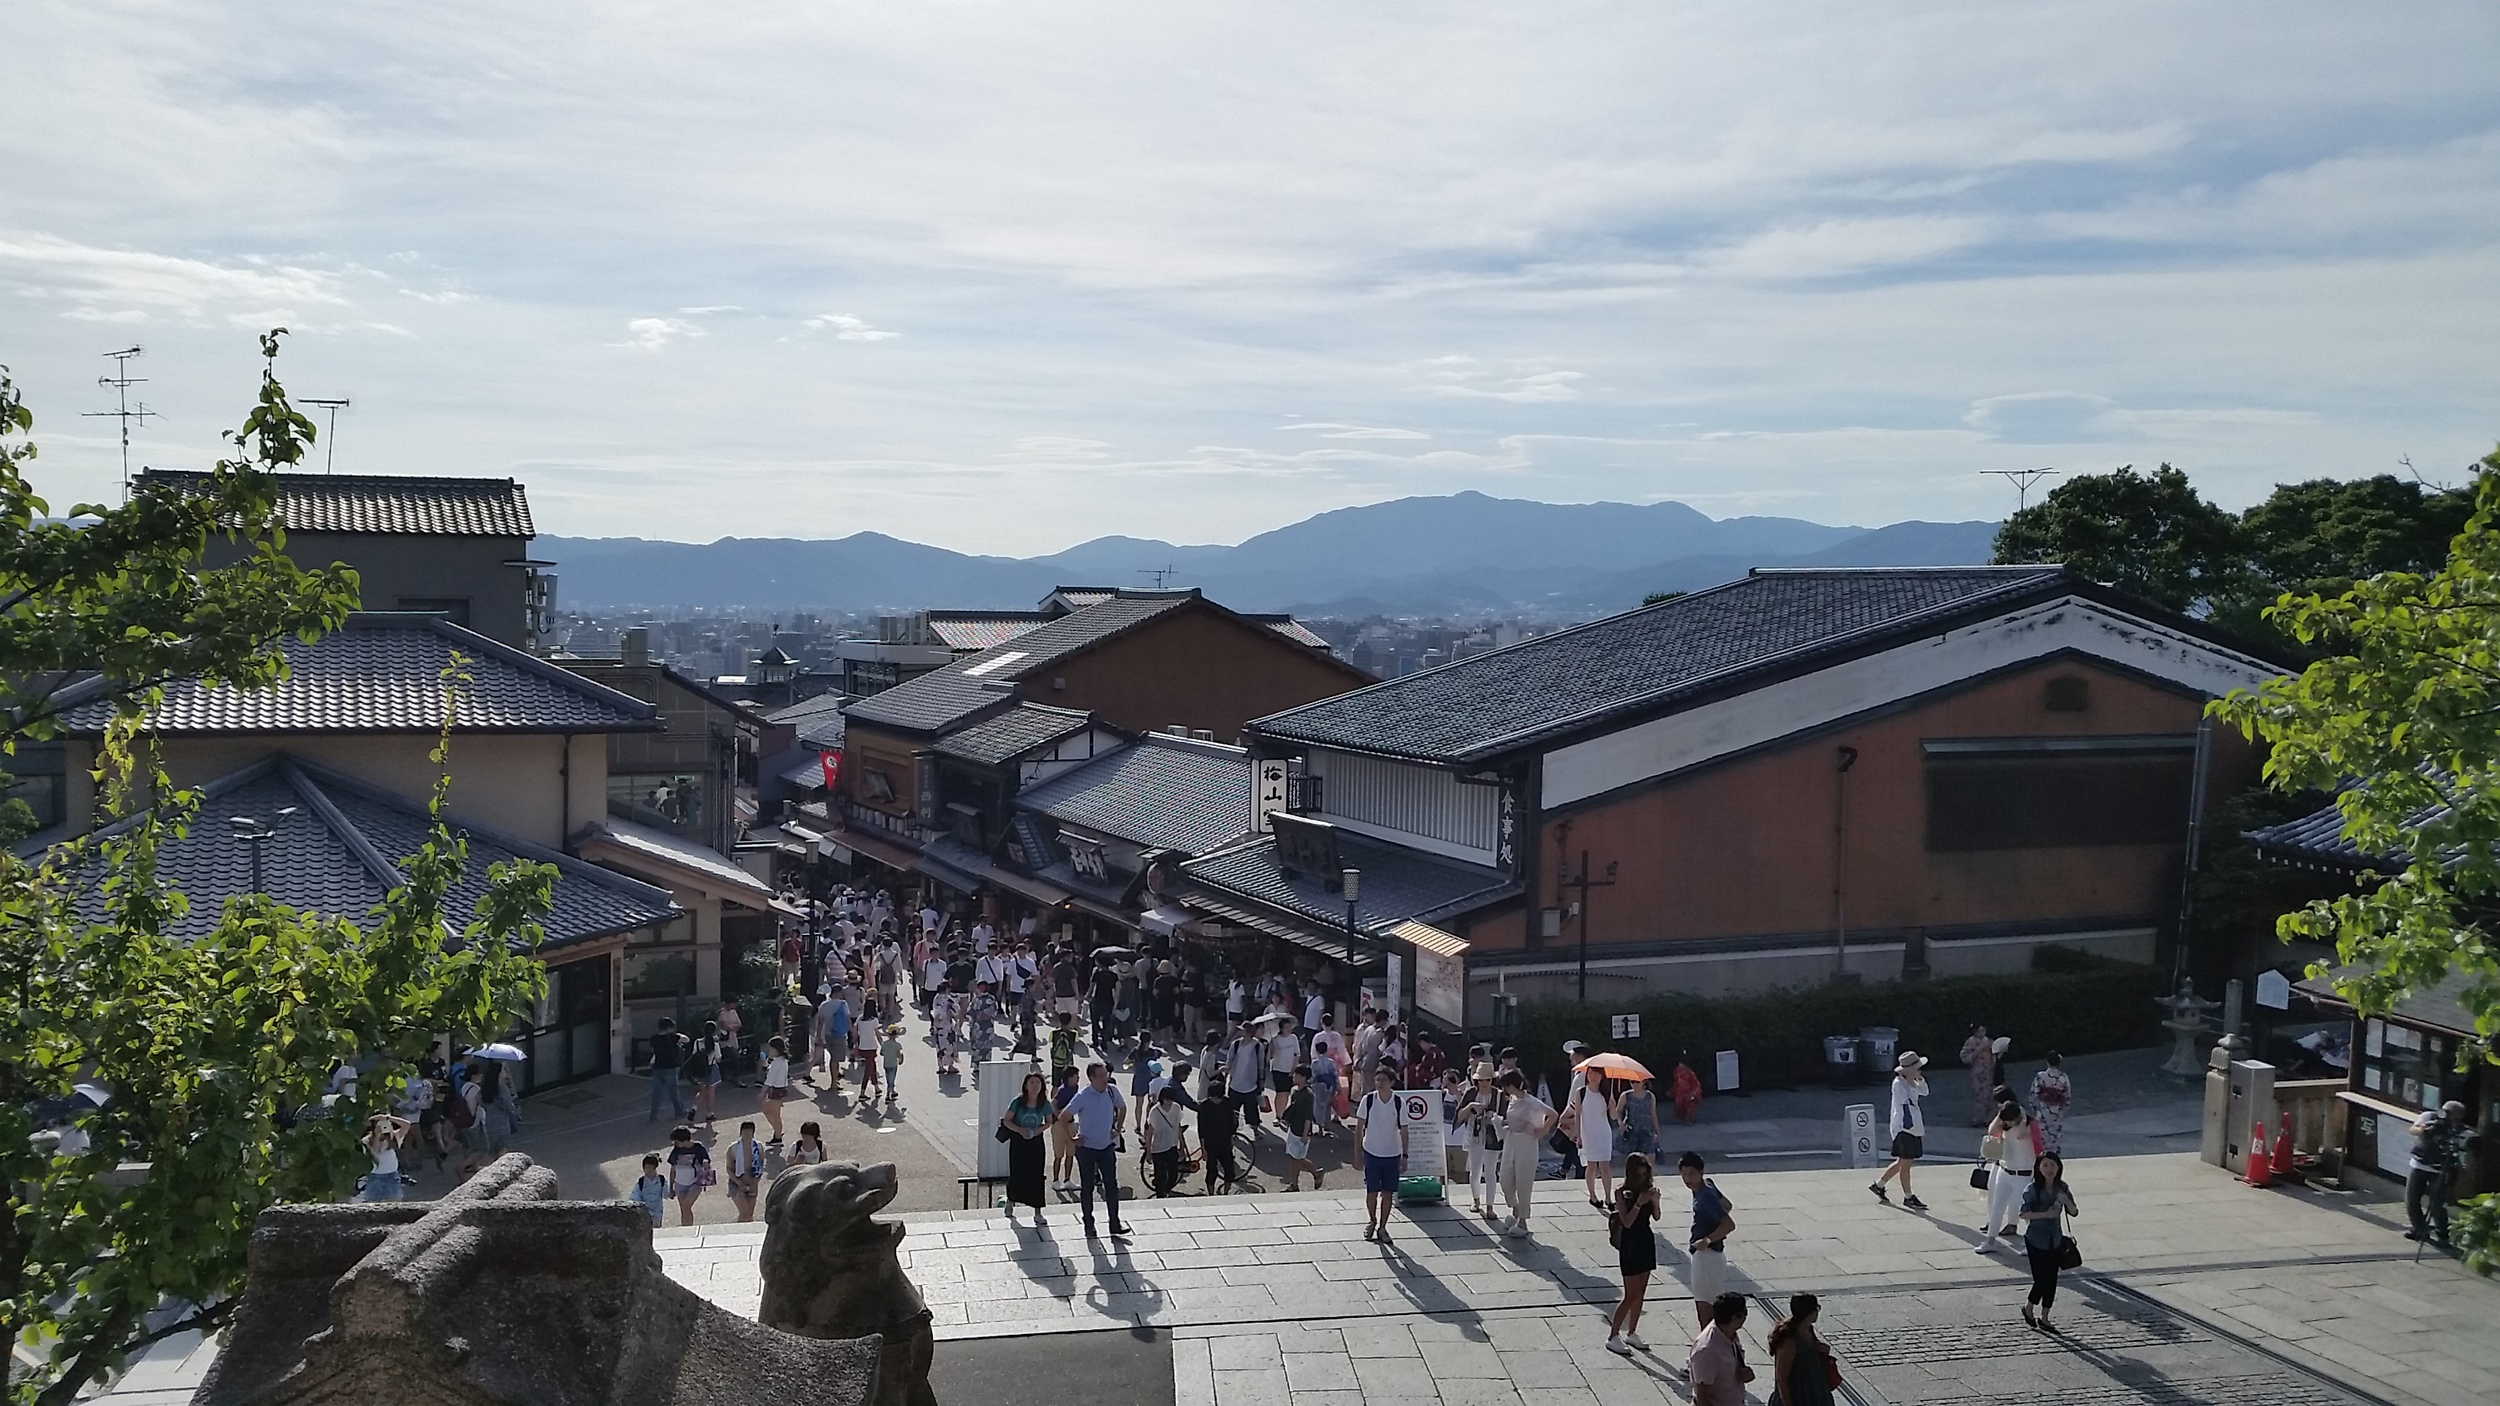 A view of the busy walking streets of Kyoto